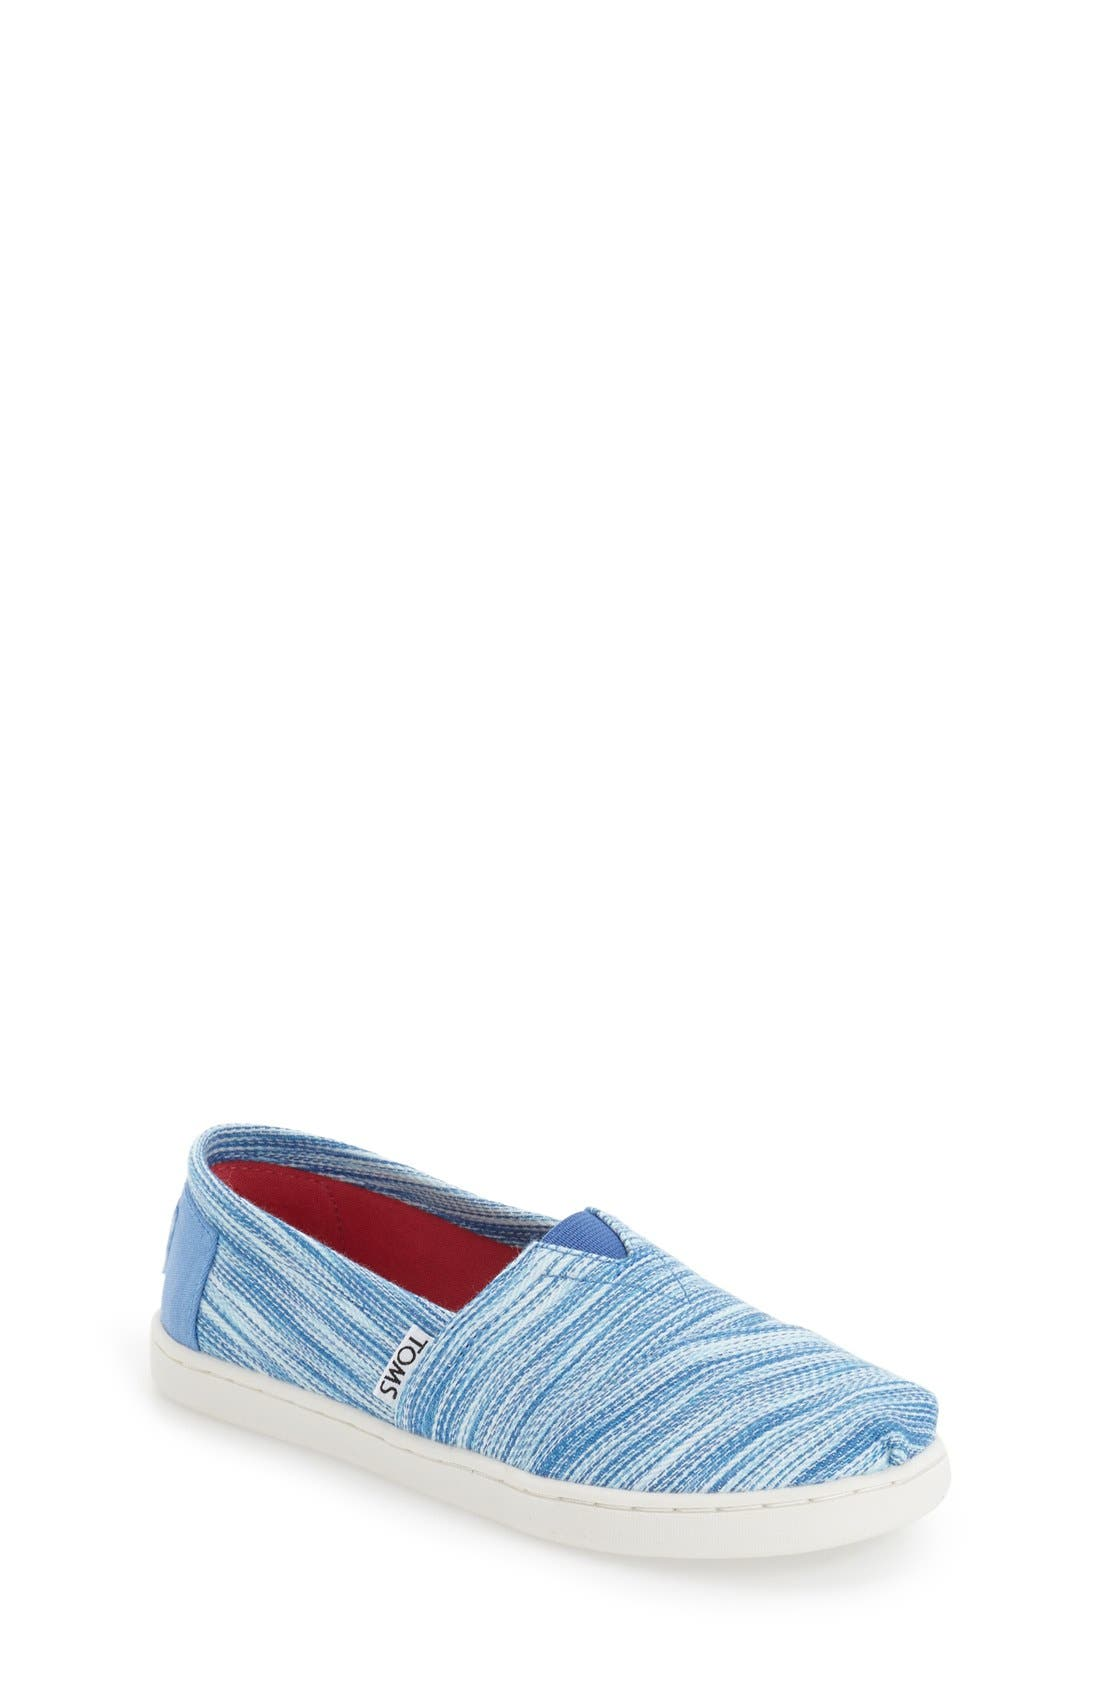 Alternate Image 1 Selected - TOMS 'Classic - Blue Space Dye' Slip-On (Baby, Walker, Toddler, Little Kid & Big Kid)